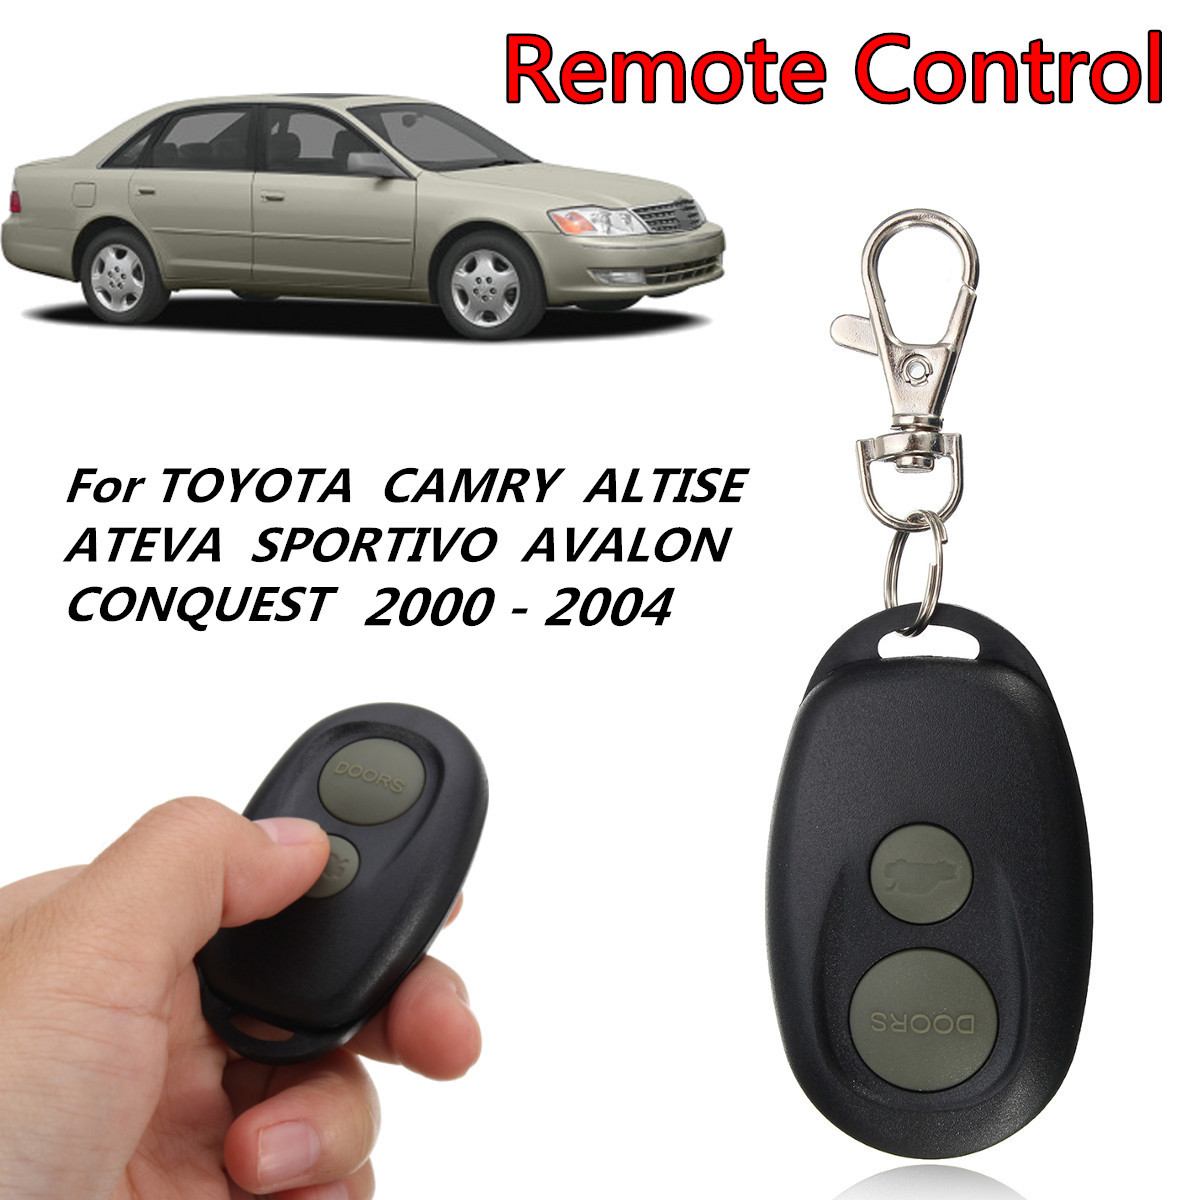 2 Buttons Car Keyless Entry Fob Remote Control Fit For Toyota Camry Avalon 00-06